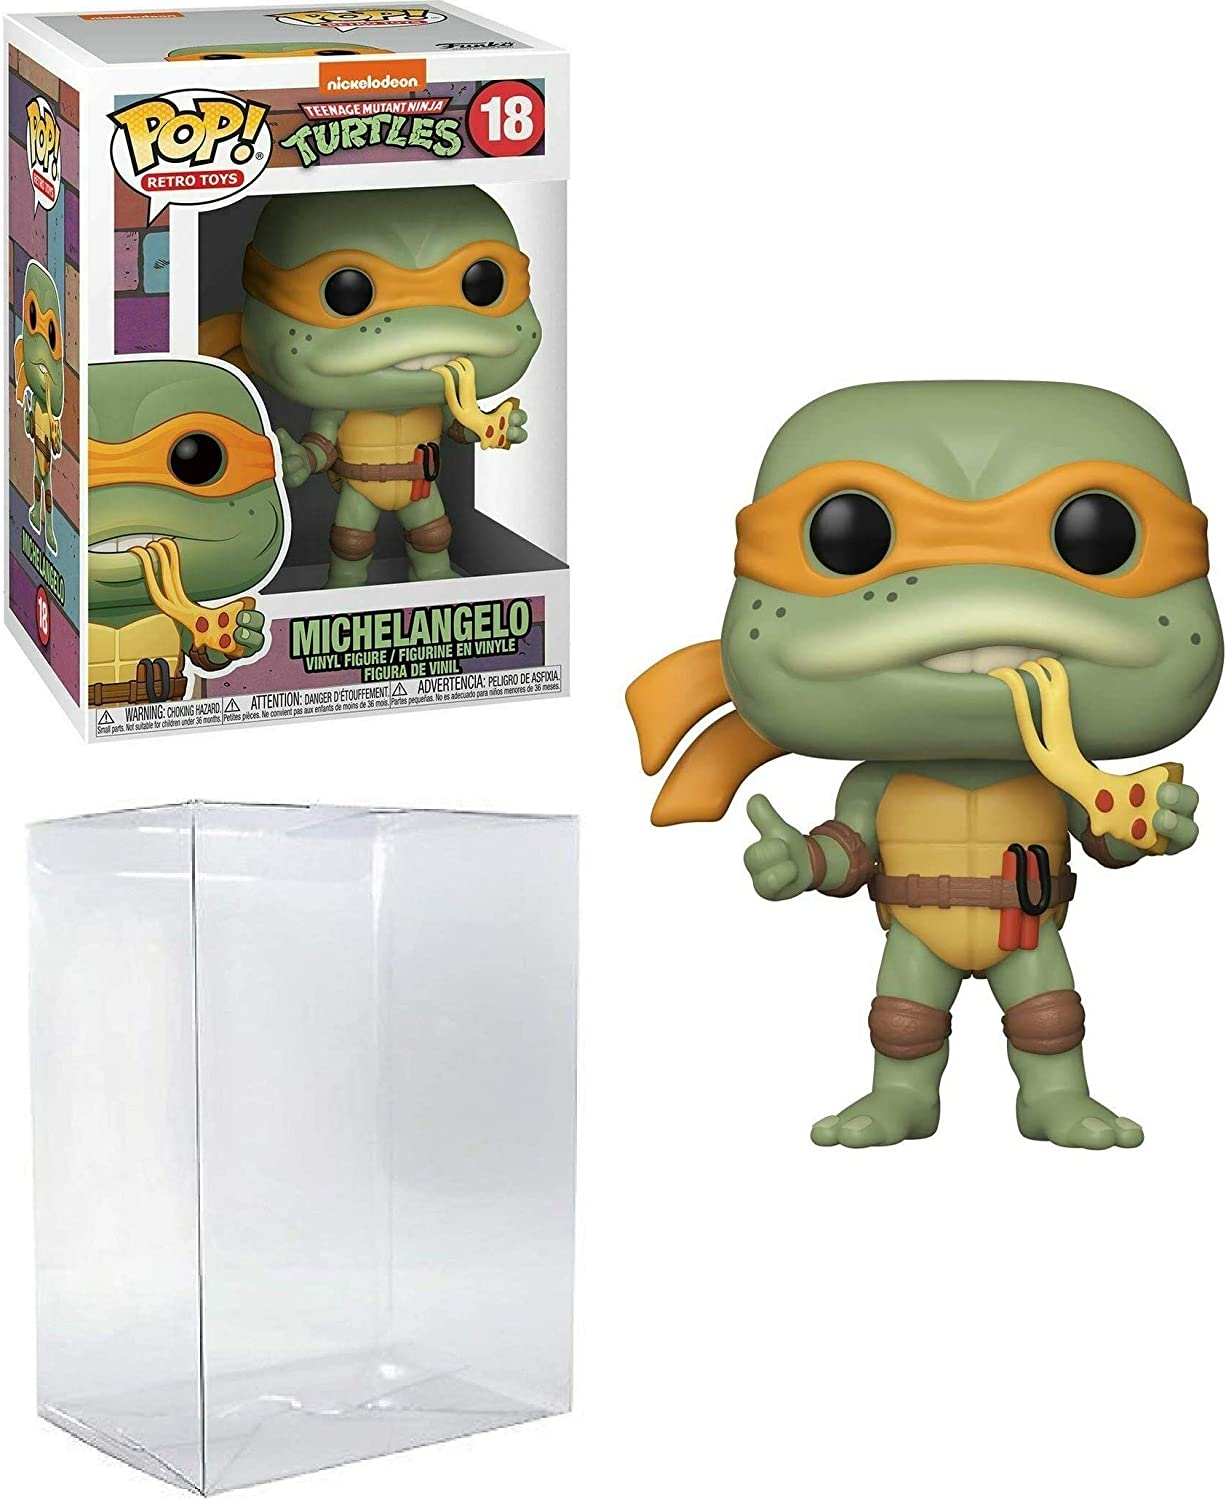 Michelangelo Pop #18 Retro Toys Teenage Mutant Ninja Turtles Vinyl Figure (Bundled with EcoTek Protector to Protect Display Box)